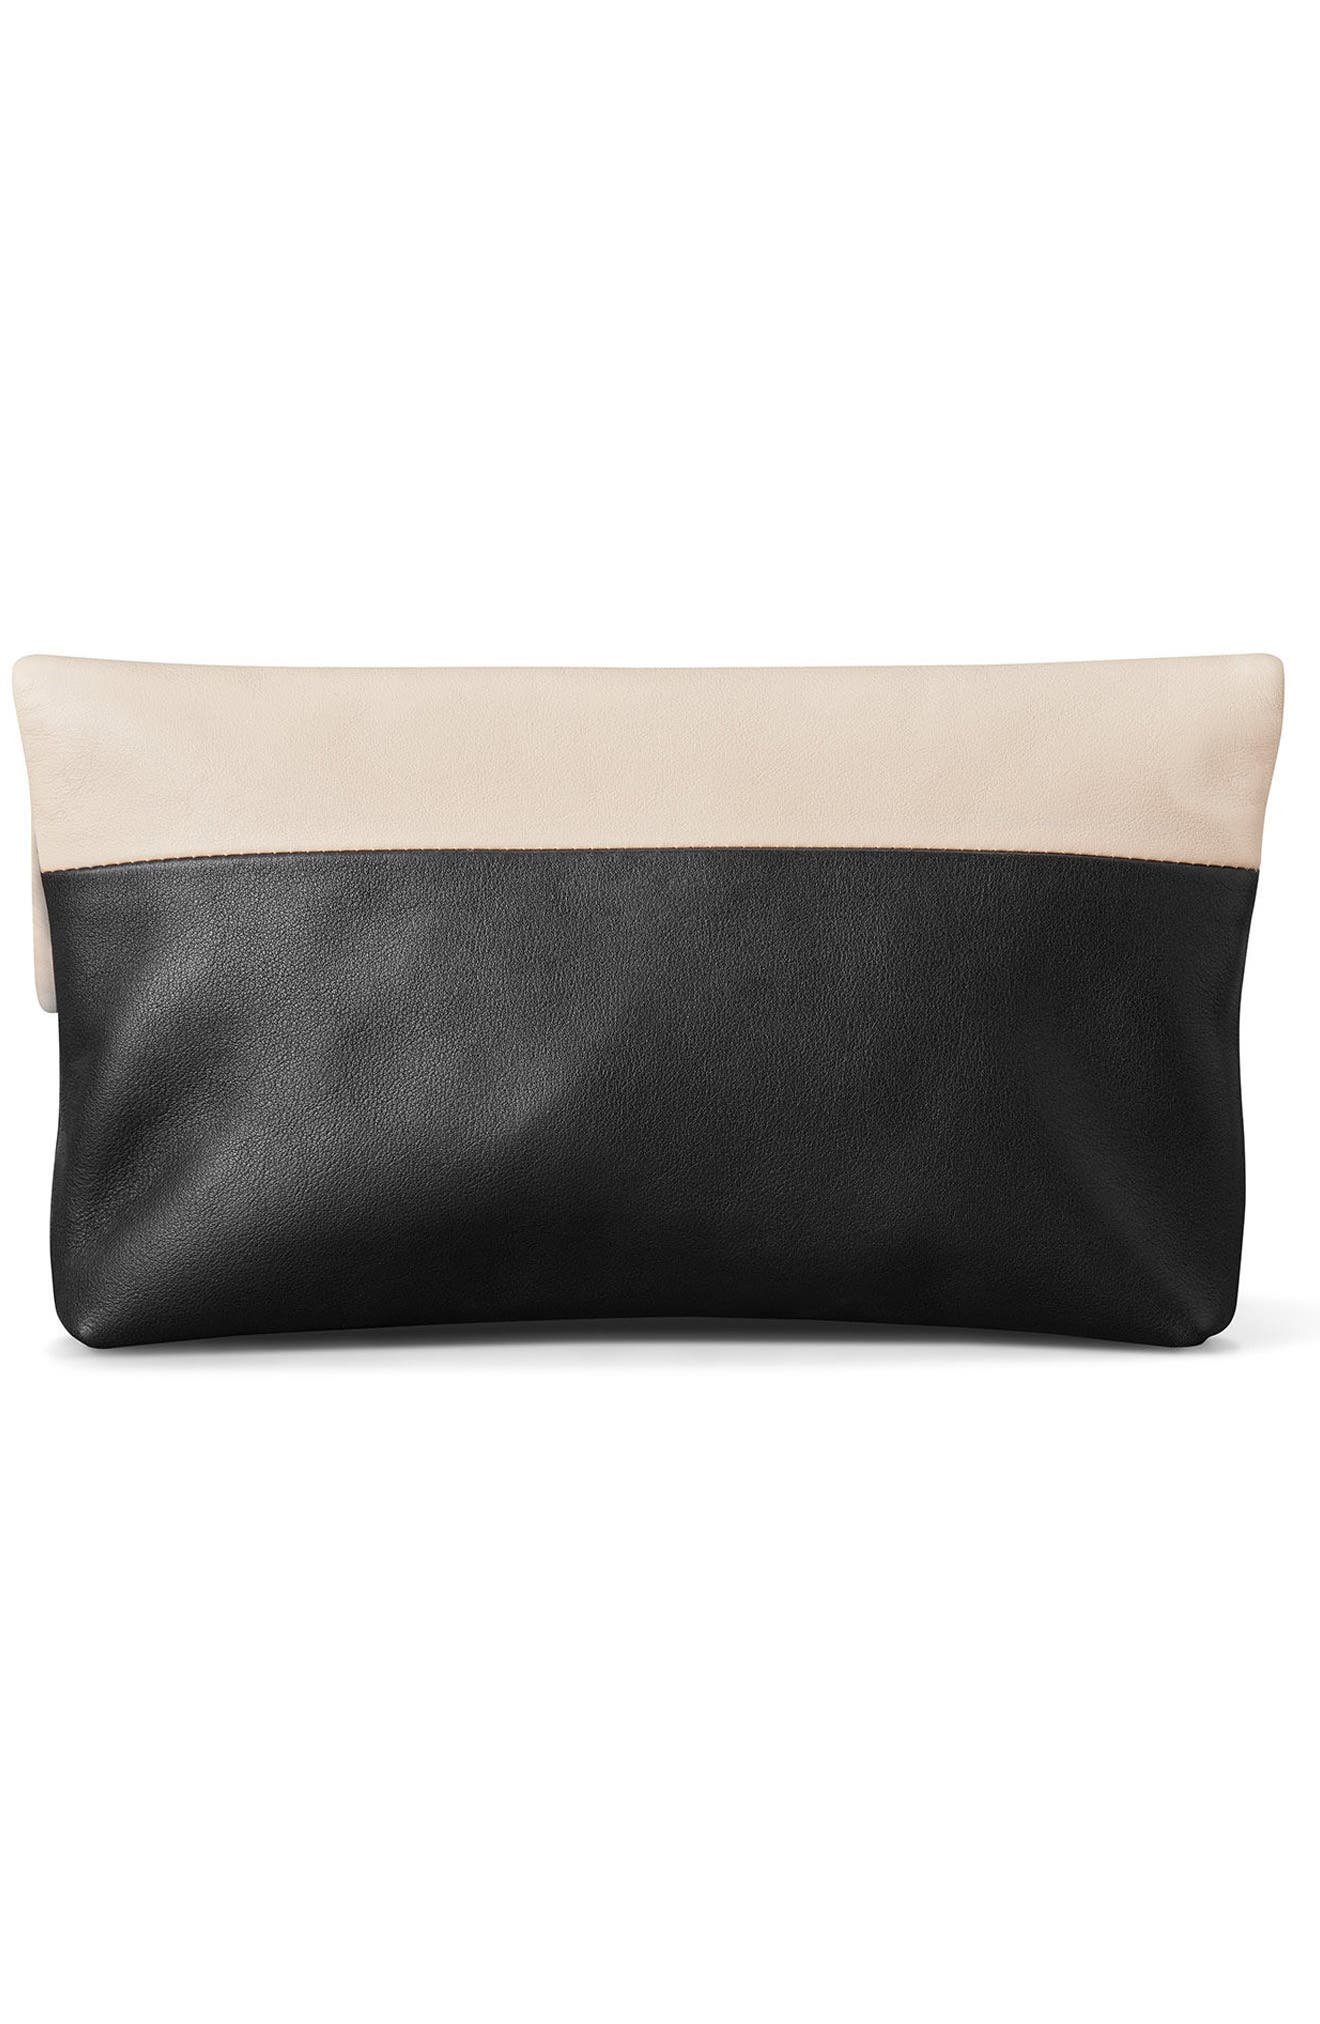 Birdy Leather Foldover Clutch,                             Alternate thumbnail 2, color,                             Soft Blush Black